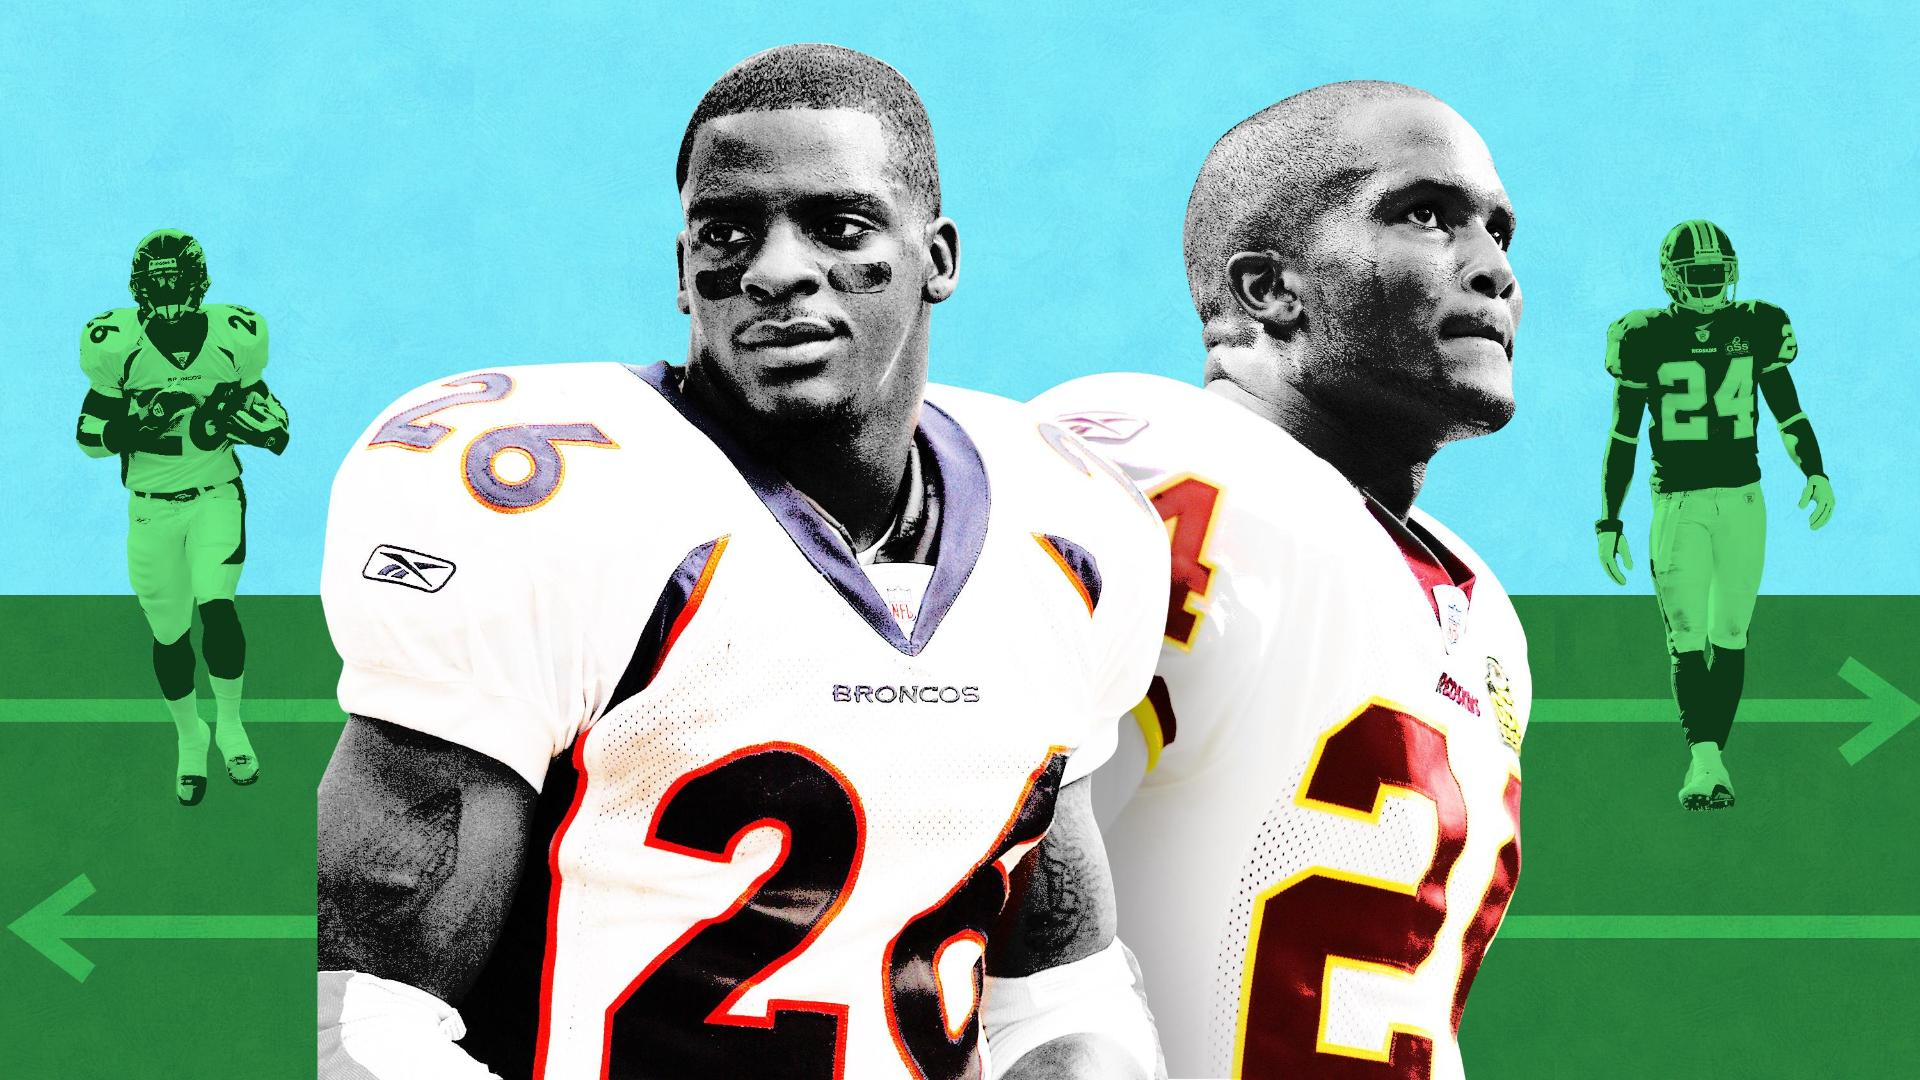 brand new 4de8d 203f9 Champ Bailey, Clinton Portis and their blockbuster trade